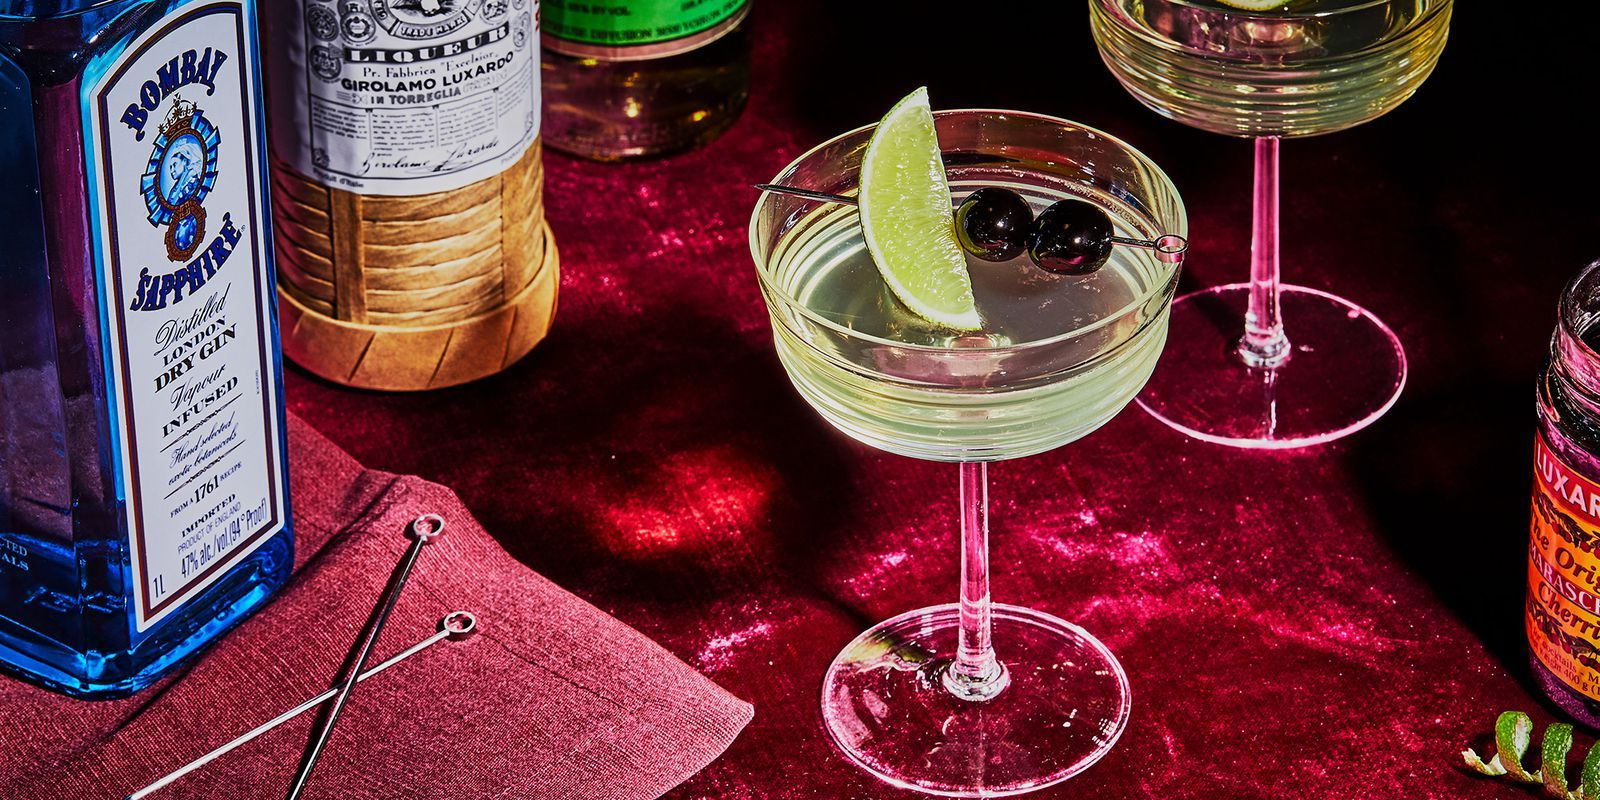 Seattle Resurrected The Last Word Cocktail So We Could All Enjoy Its Funkiness Cocktails Cocktail Book Paper Plane Cocktail